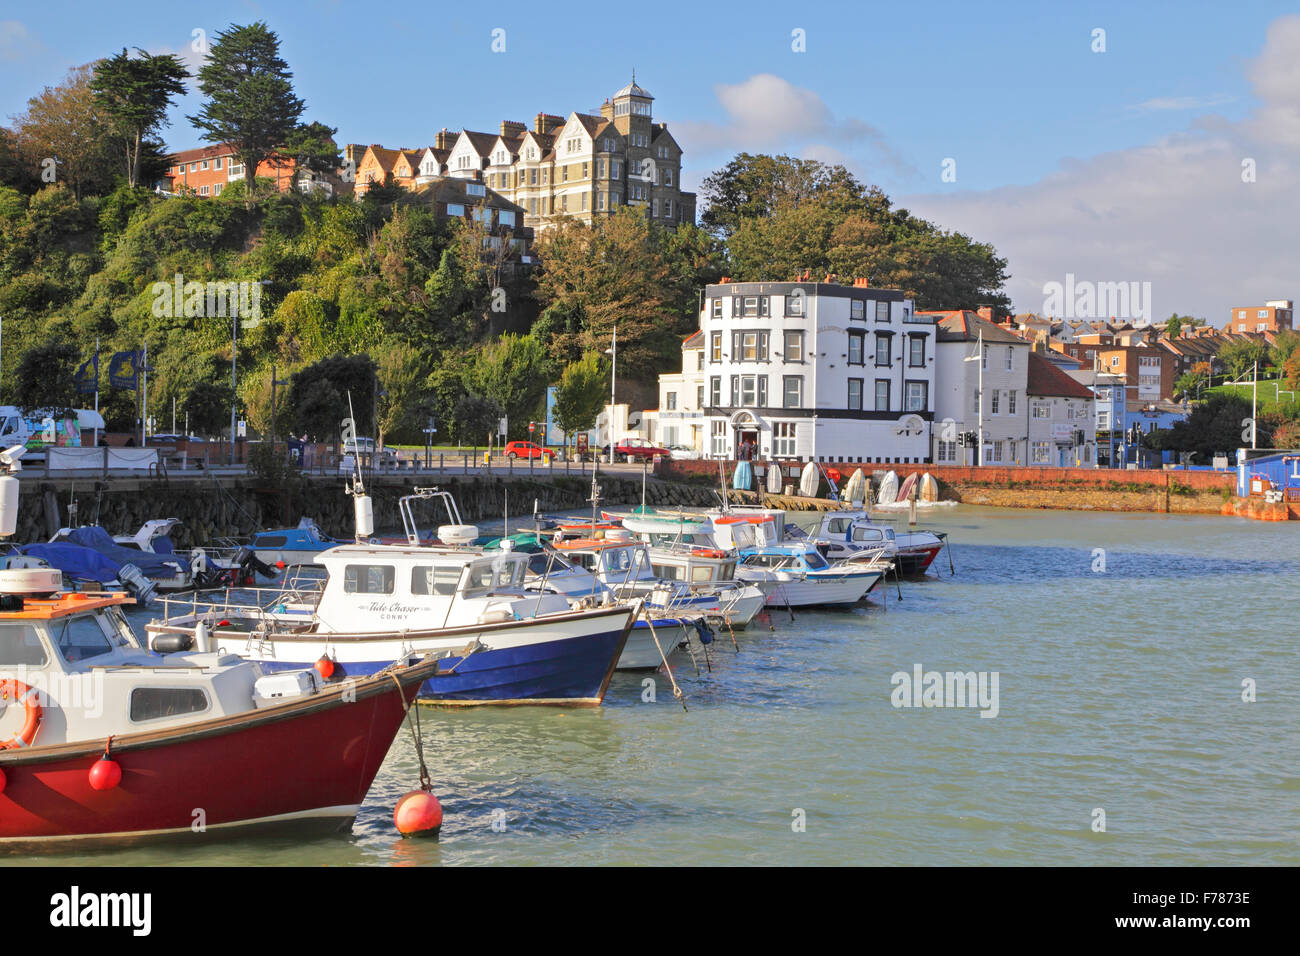 Folkestone, Inner Harbour, Kent, England, UK, GB - Stock Image